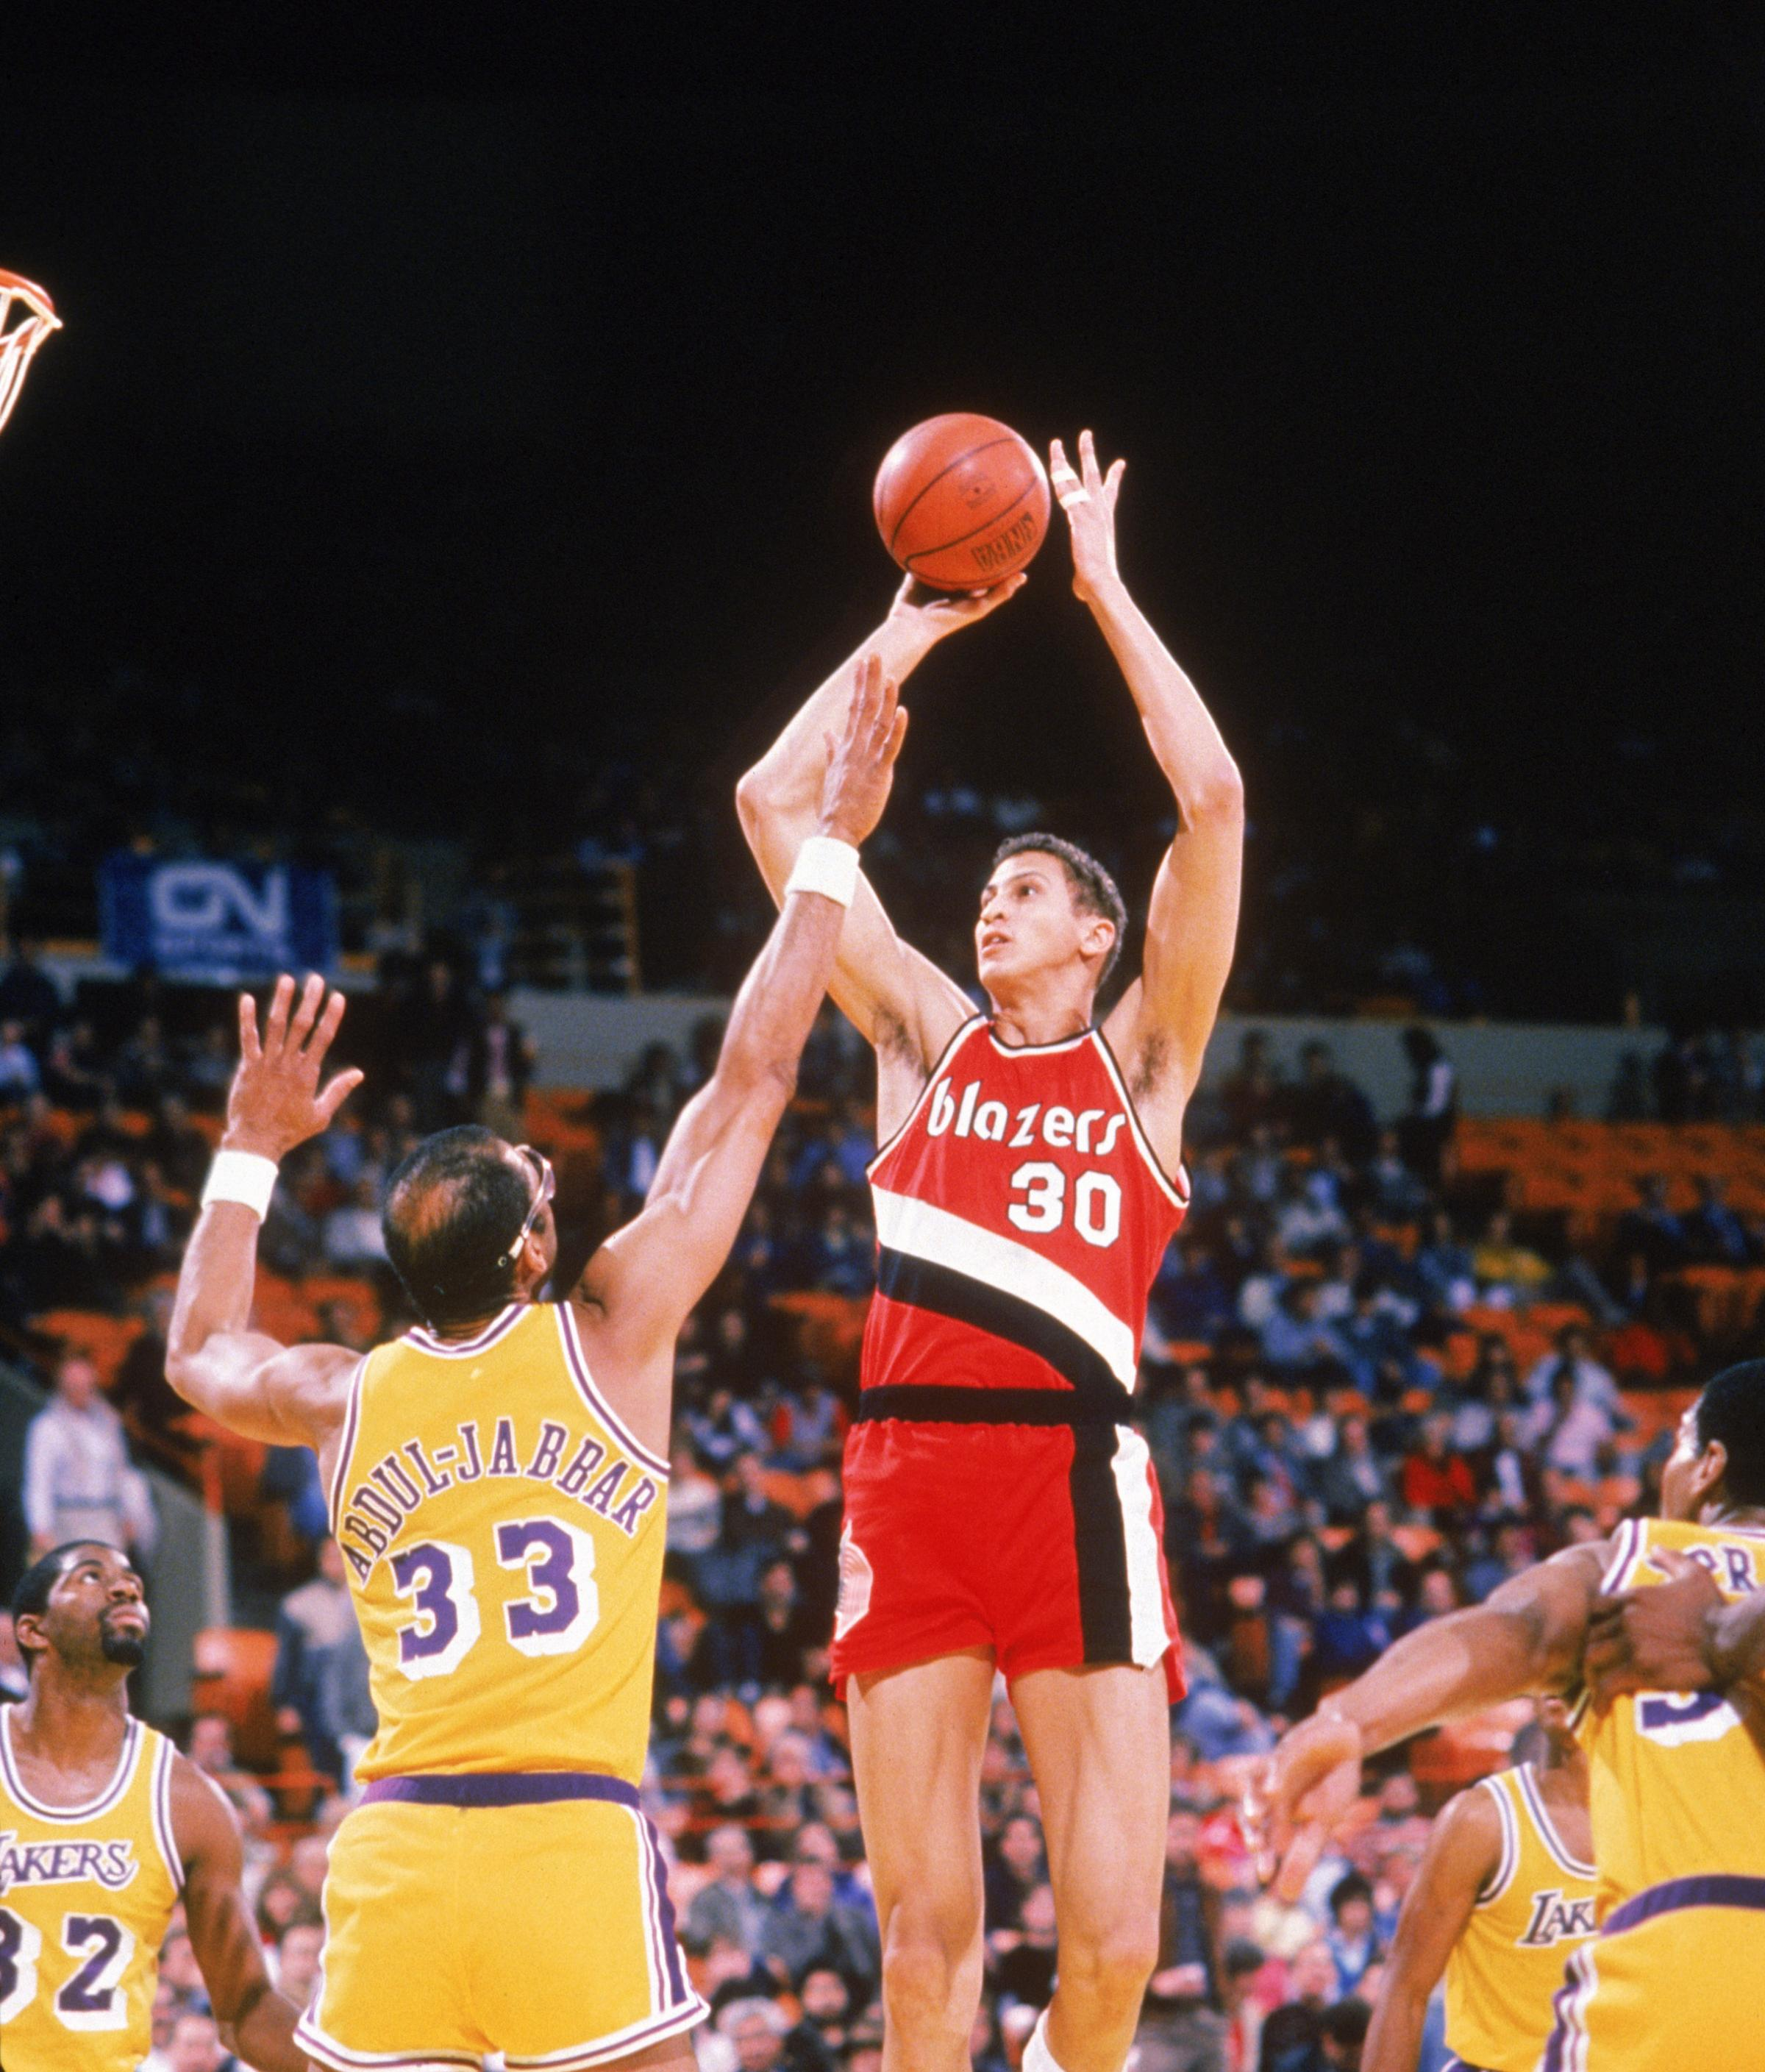 Portland Blazers Roster 2012: 'Bowie Over Jordan': A New Look At The Pick That Still